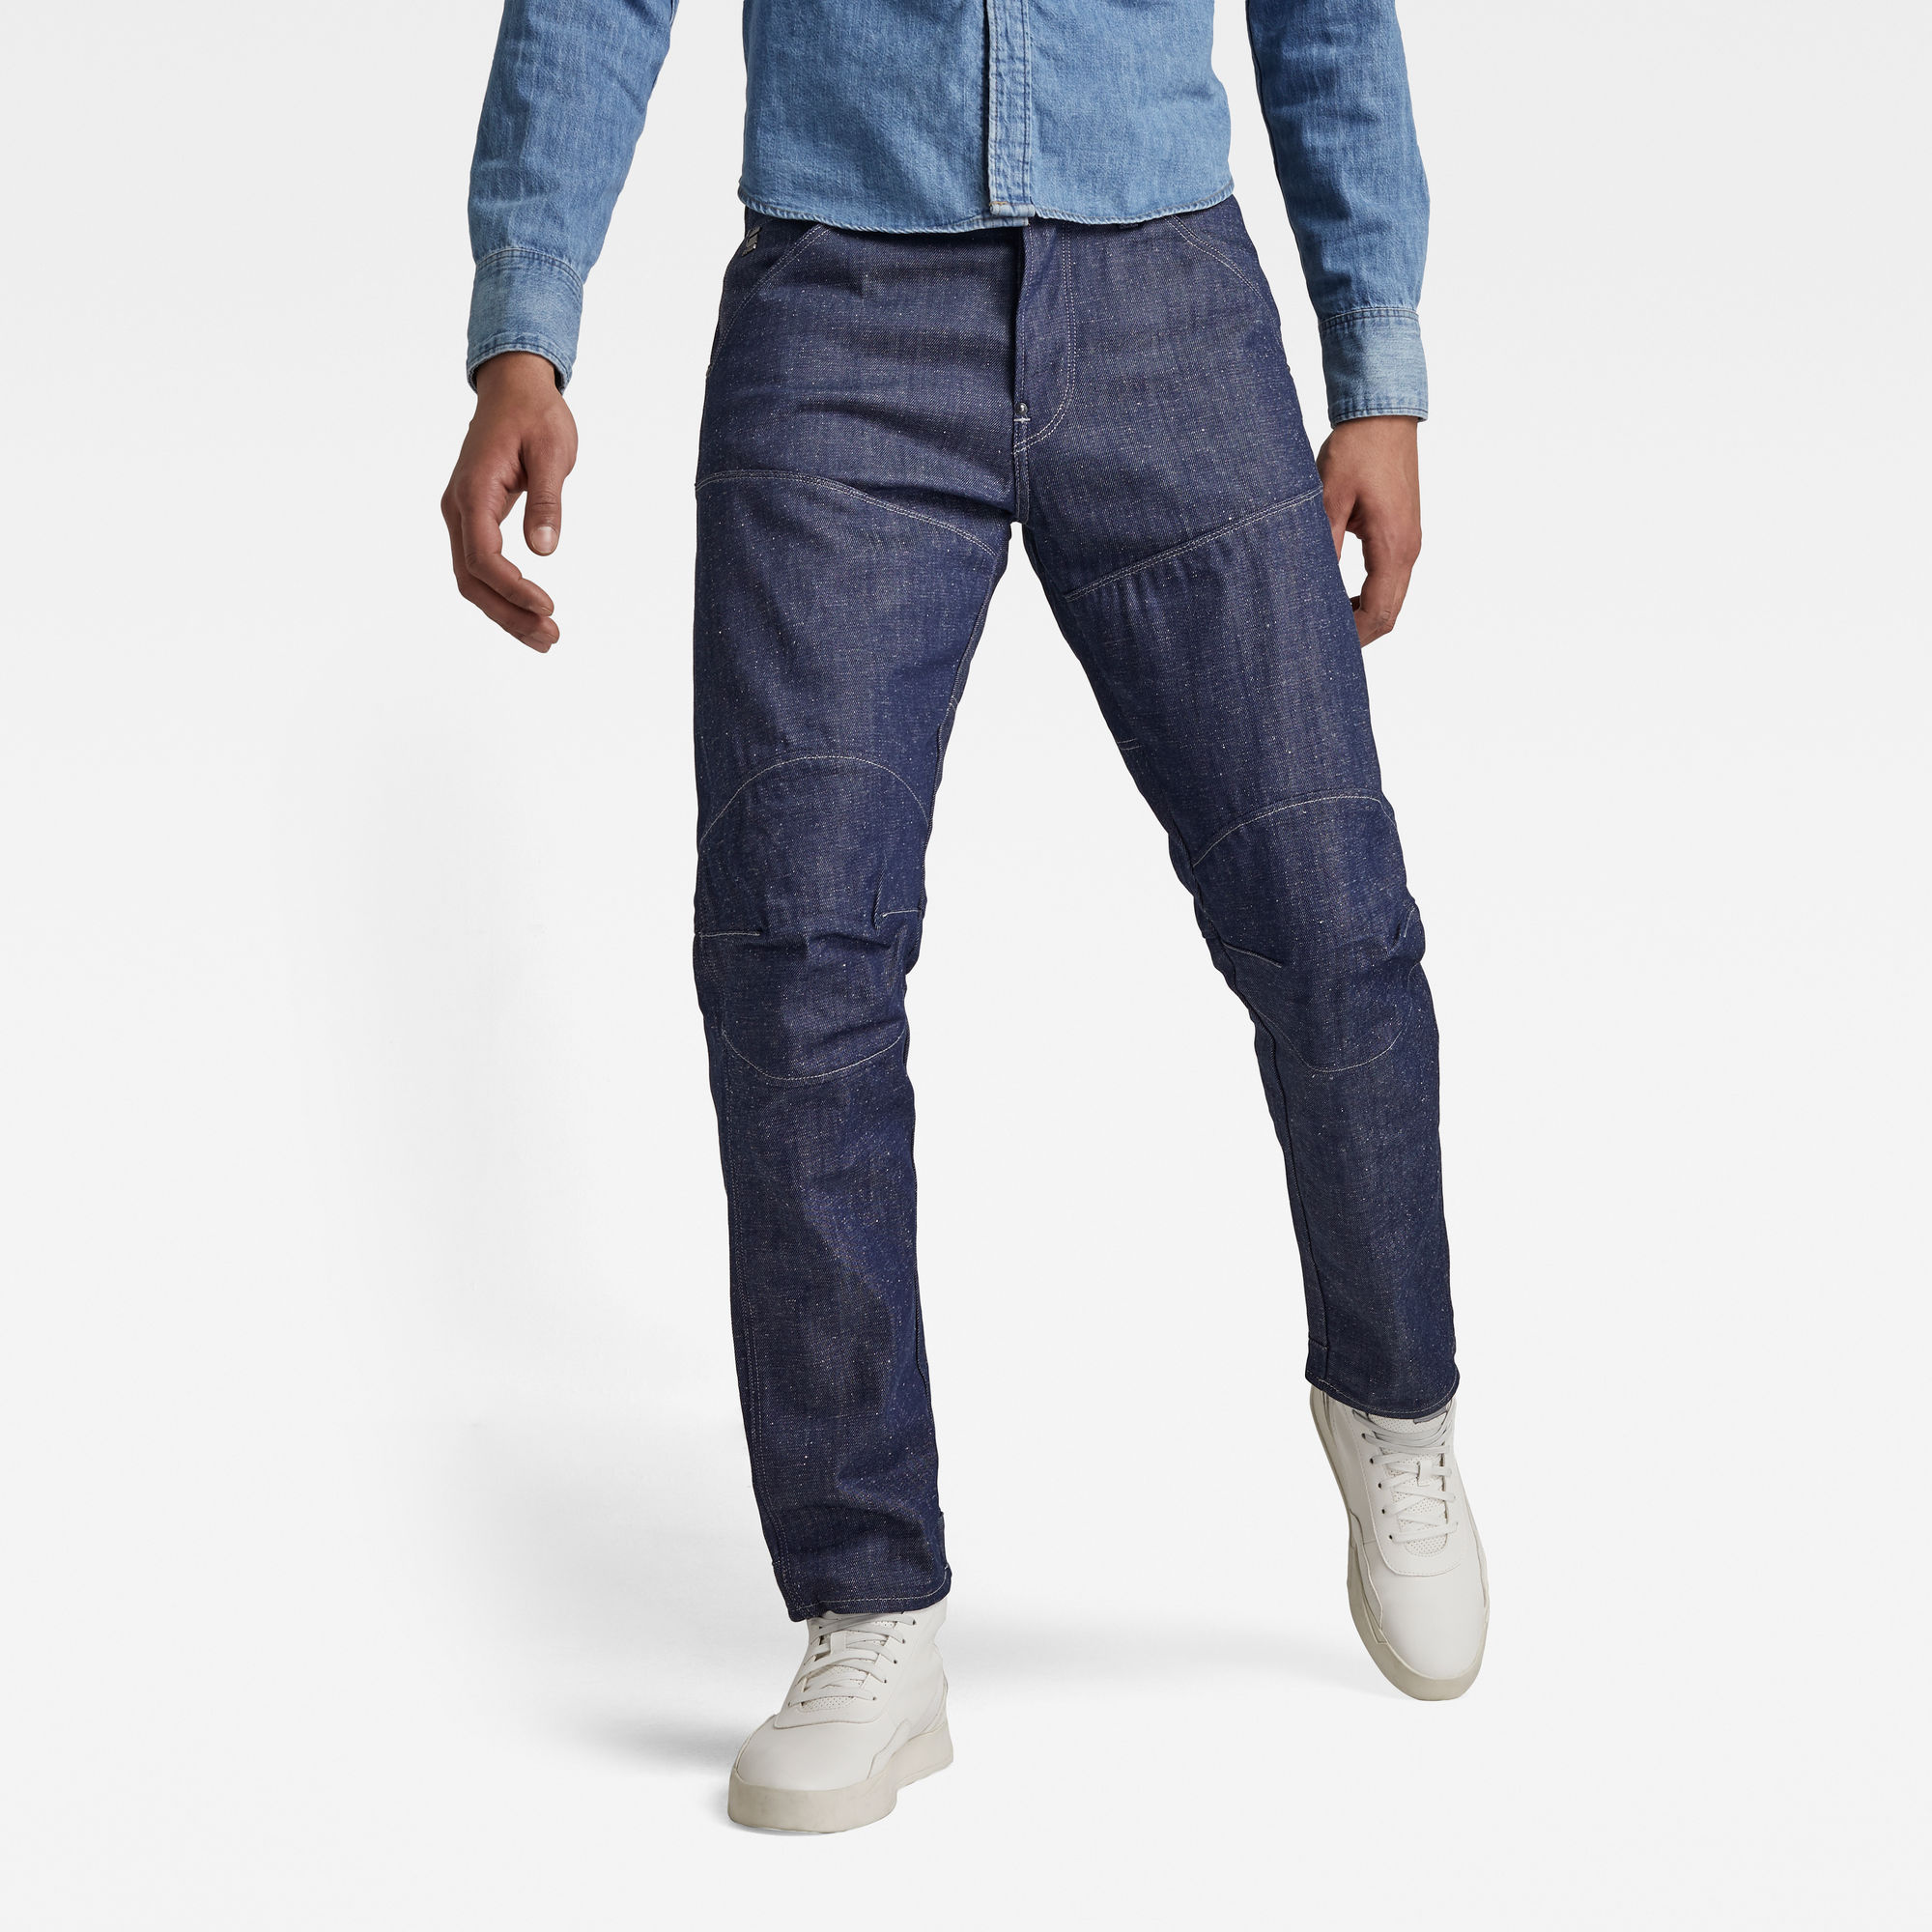 G-Star RAW Heren 5620 3D Original Relaxed Tapered Jeans Donkerblauw